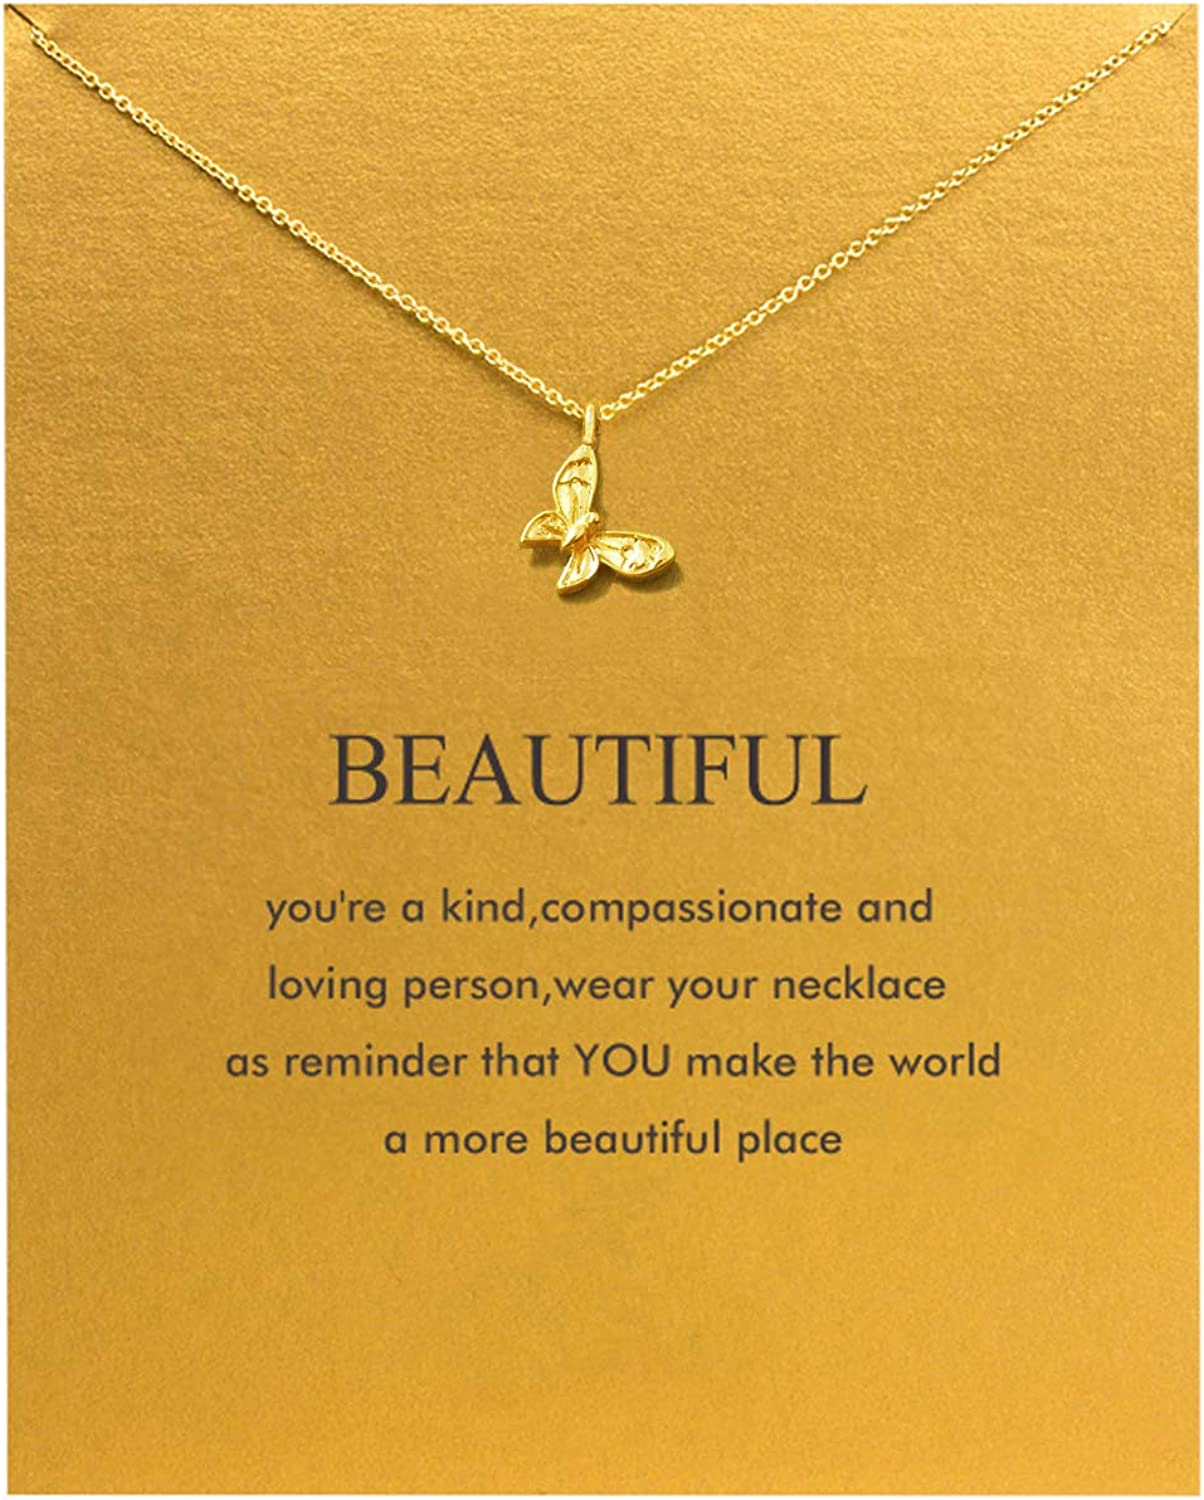 Thinking of You Gold Necklace Birthday Gift Small Gift Dainty Heart Chain with Card and Envelope Simple Jewelry